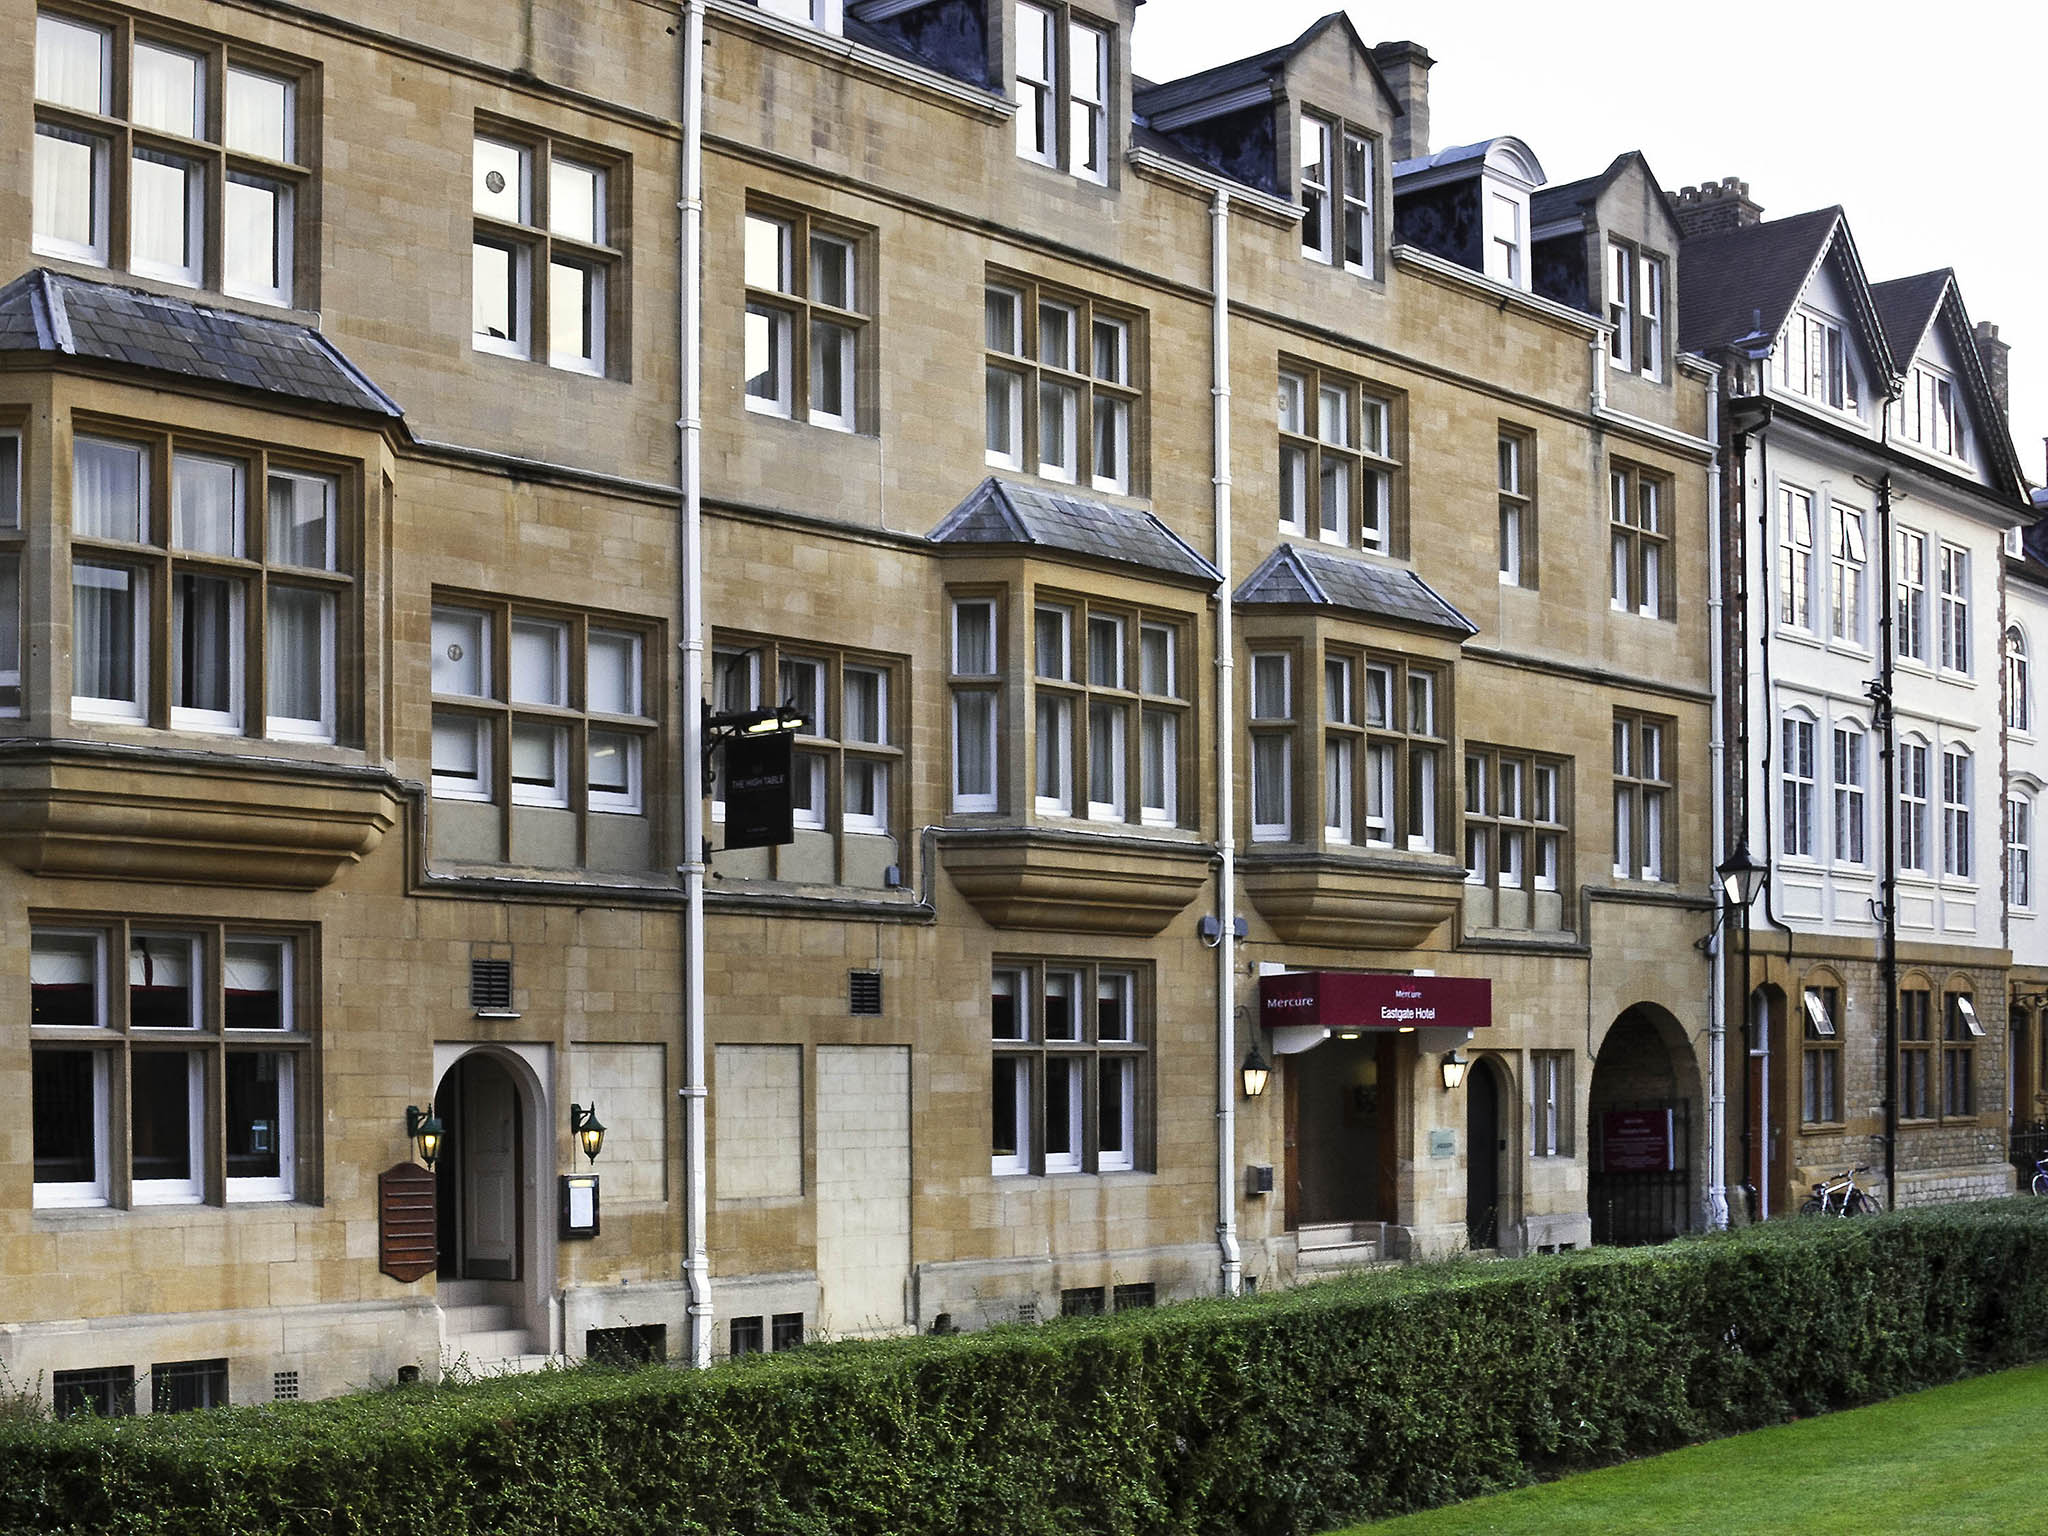 Oxford Mercure Eastgate Hotel Oxoford